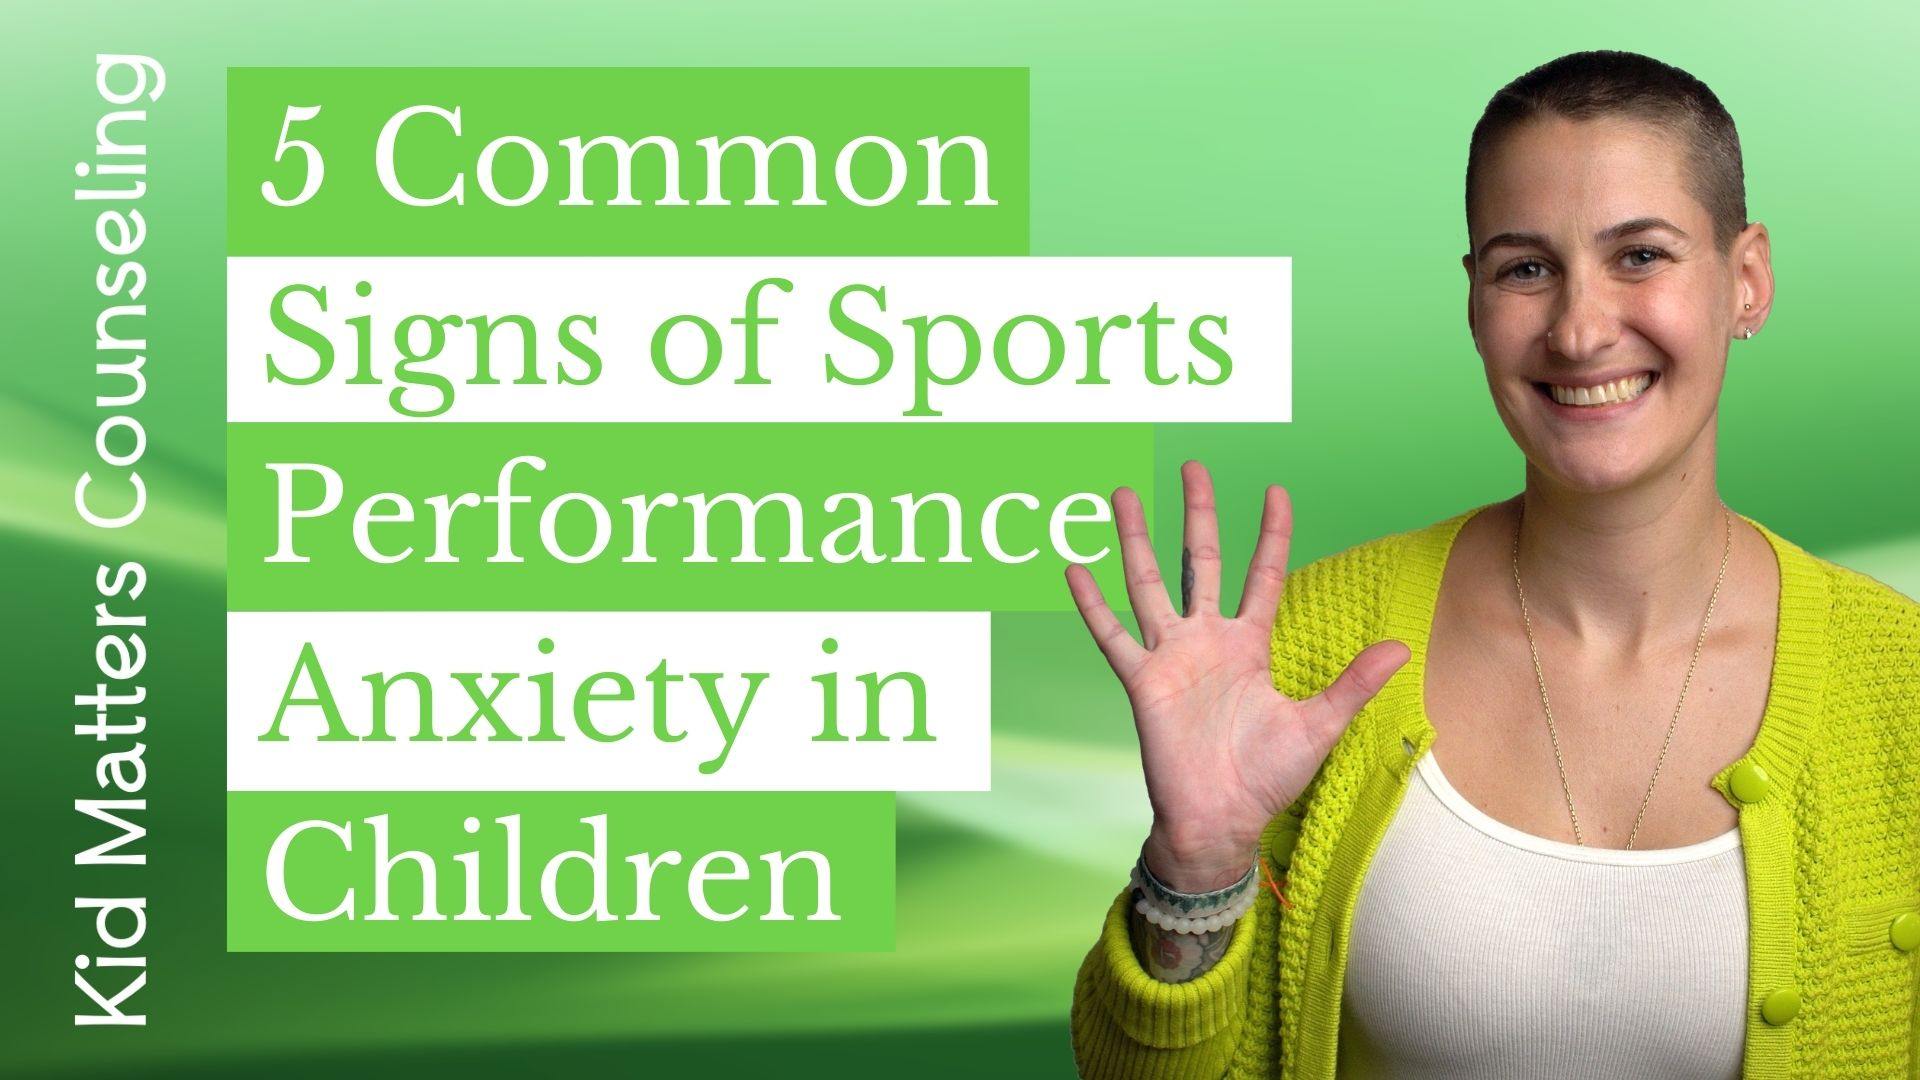 5 Common Signs of Sports Performance Anxiety in Children